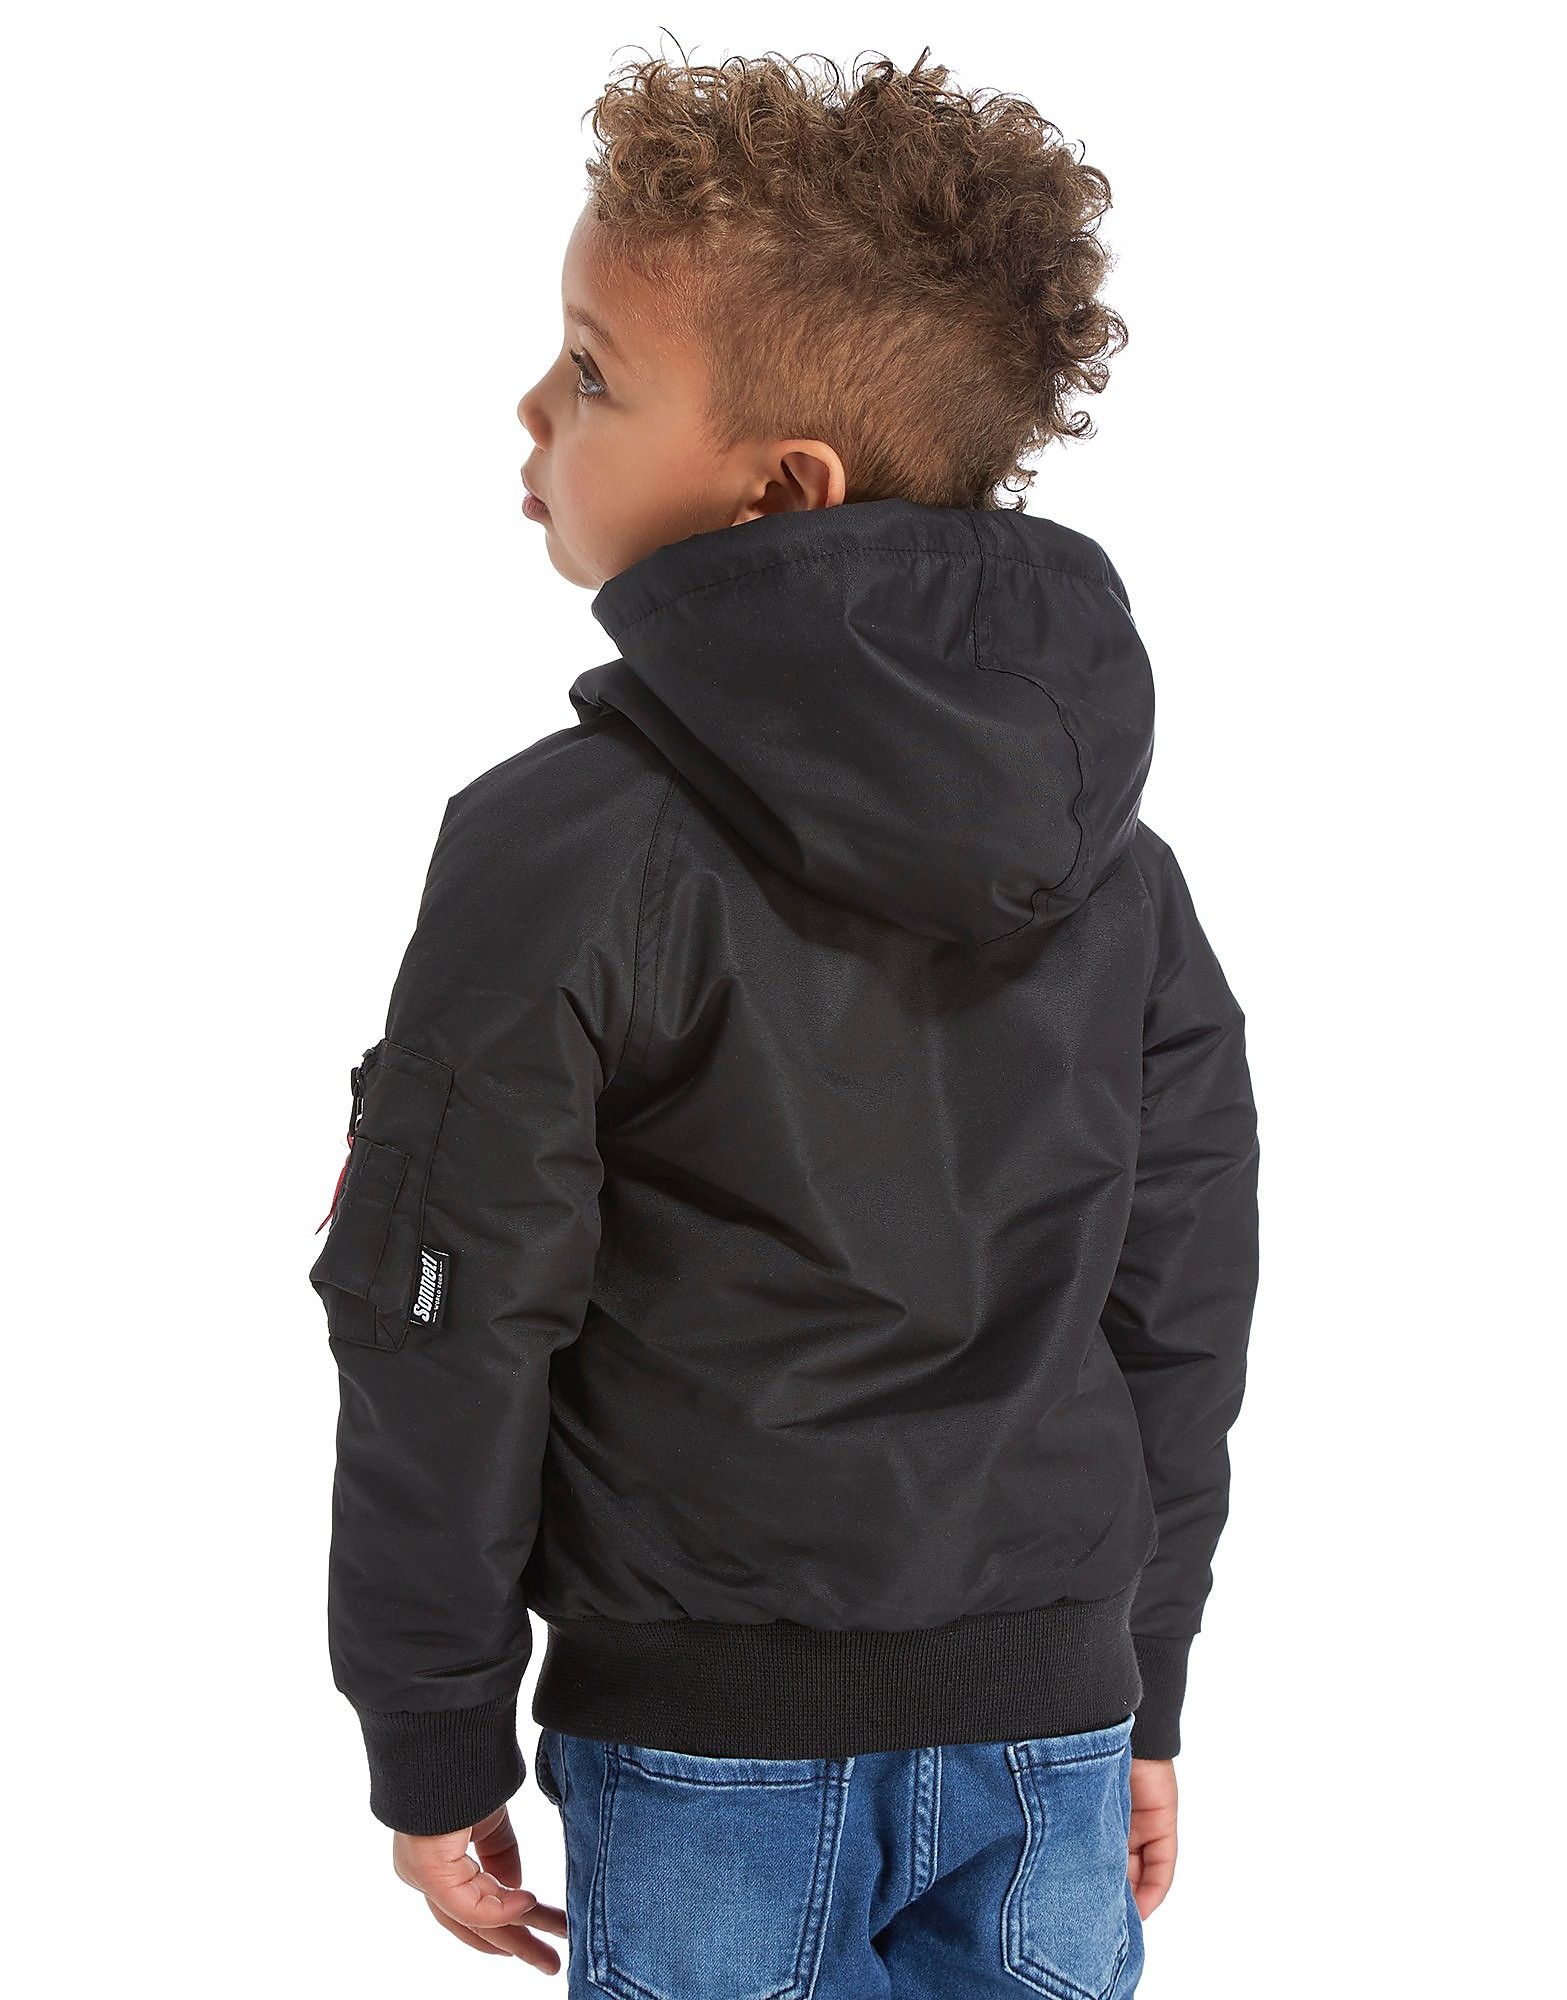 Sonneti Jet Bomber Jacket Children